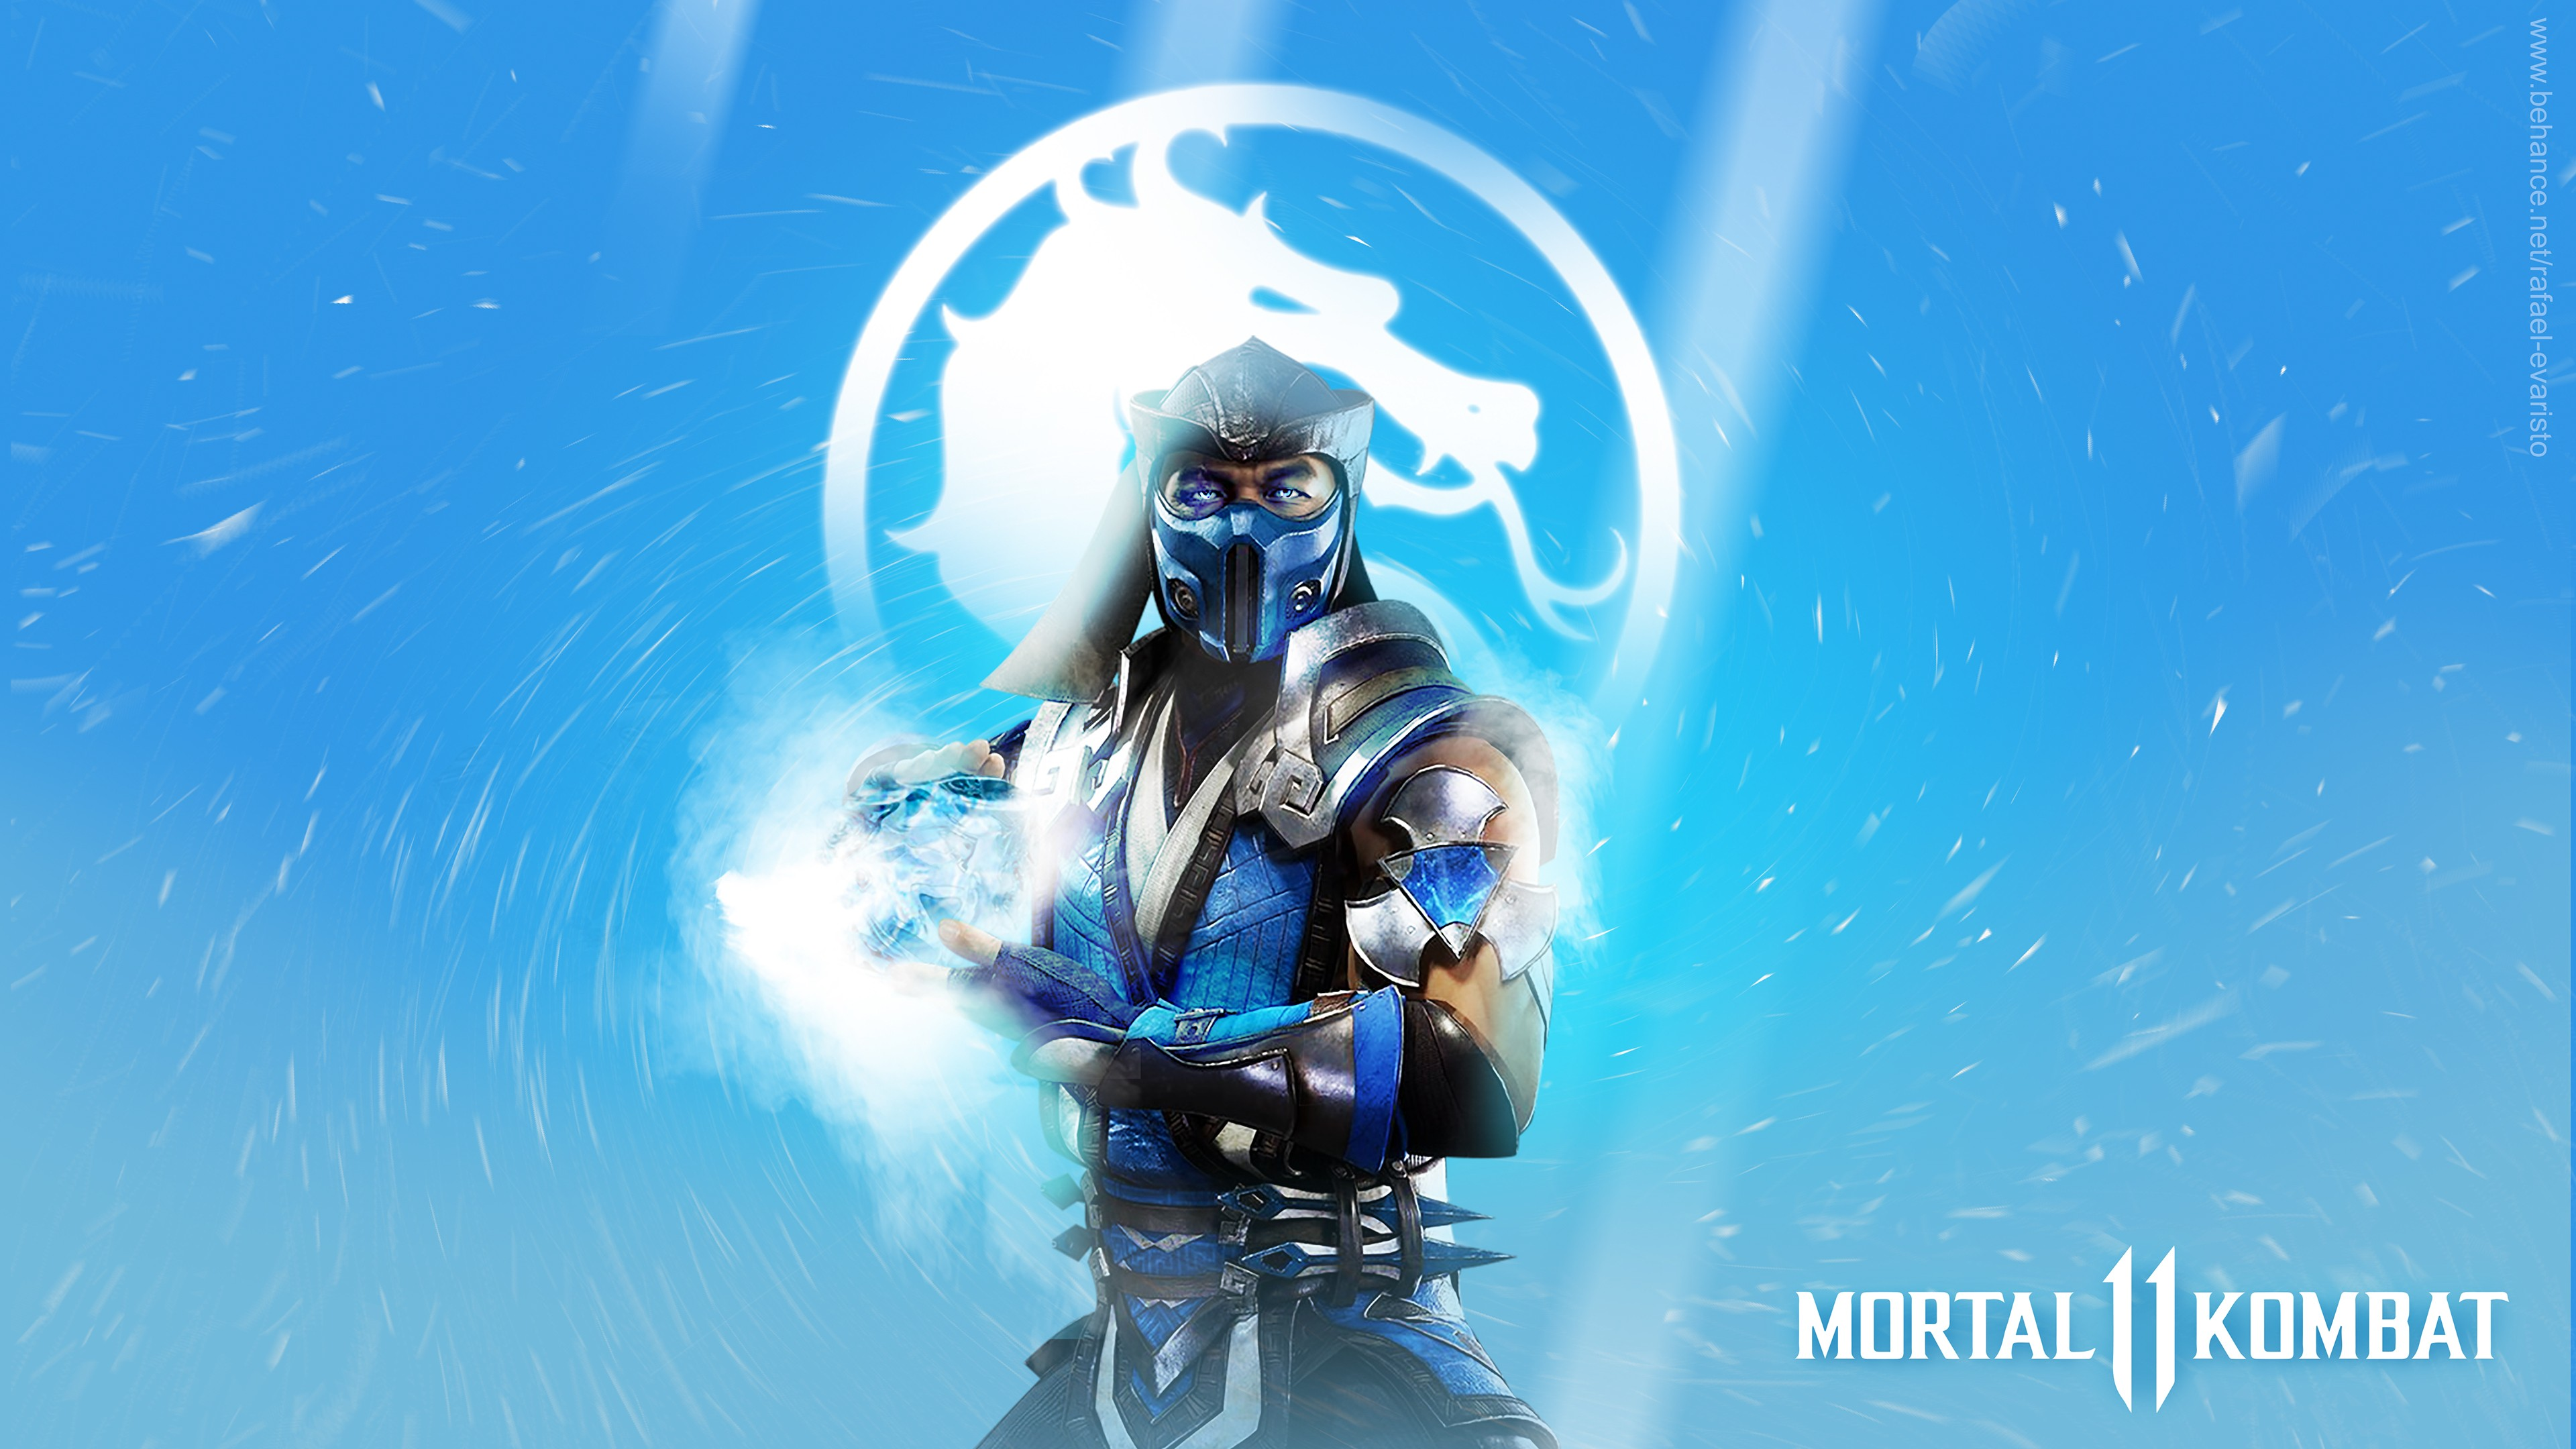 Sub Zero In Mortal Kombat 11 4k Wallpapers Hd Wallpapers